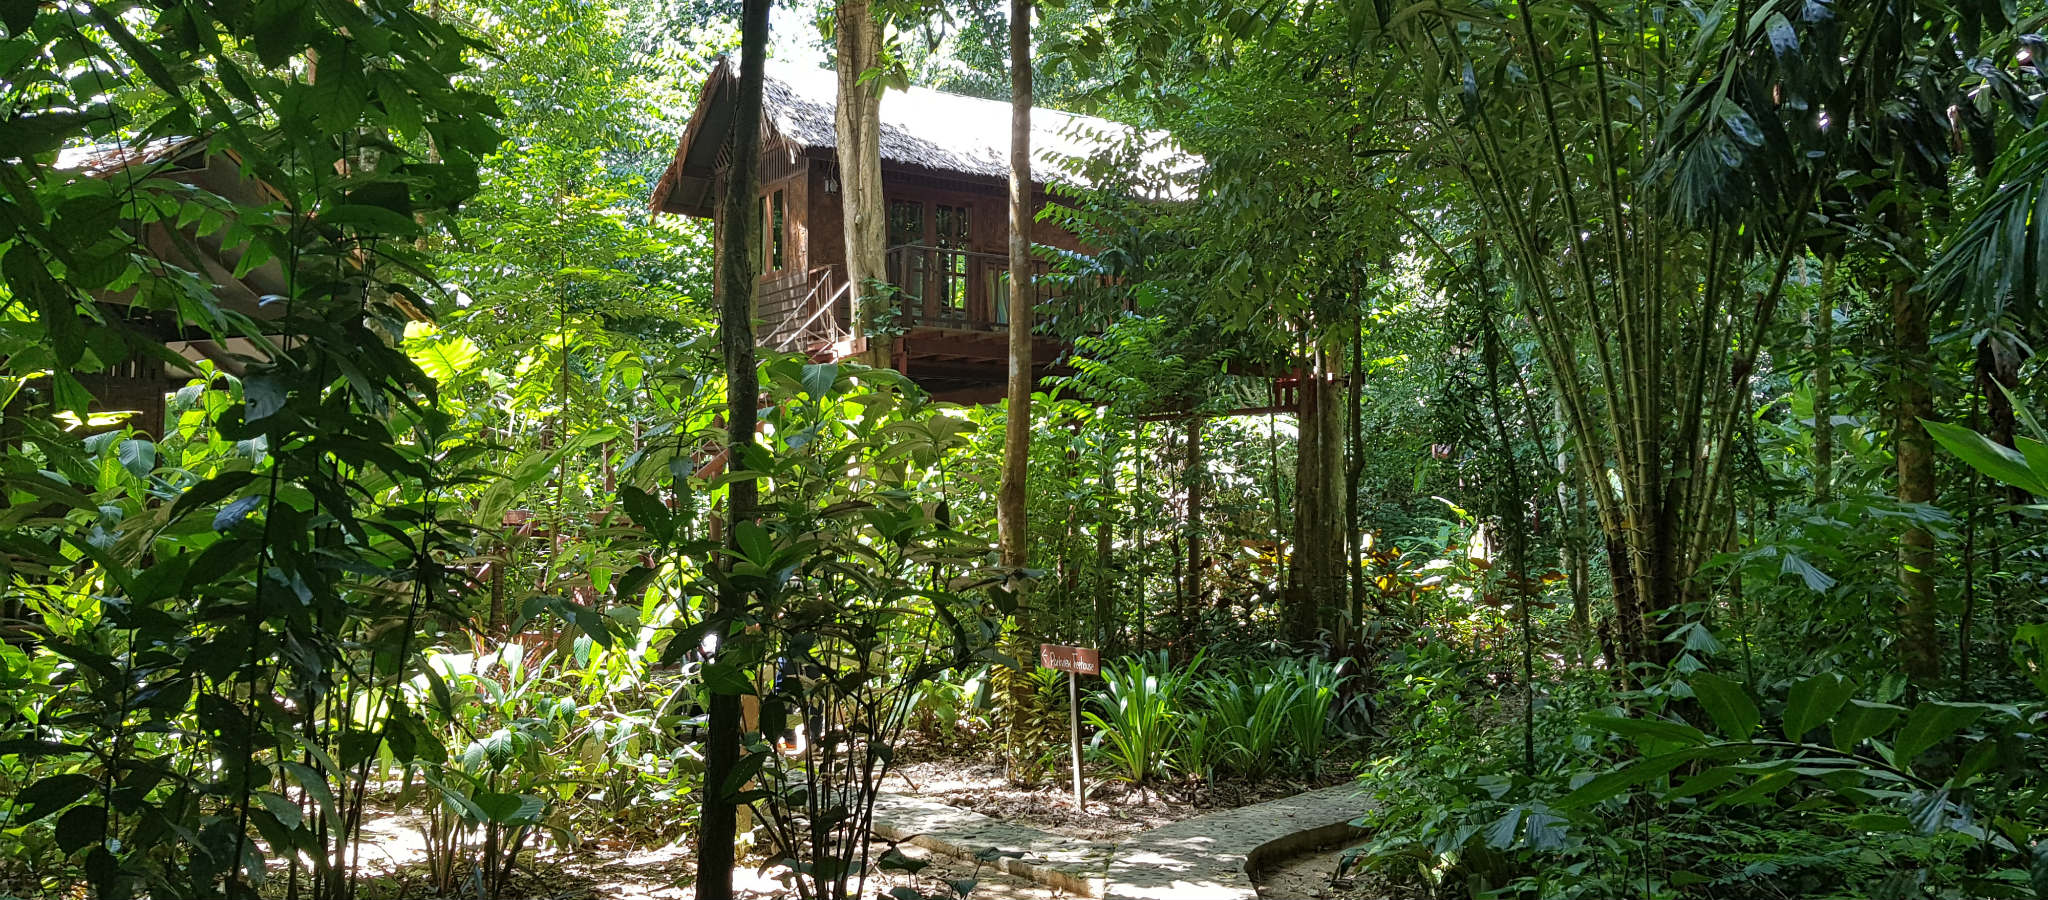 Boomhut van Our Jungle House in Khao Sok, Thailand